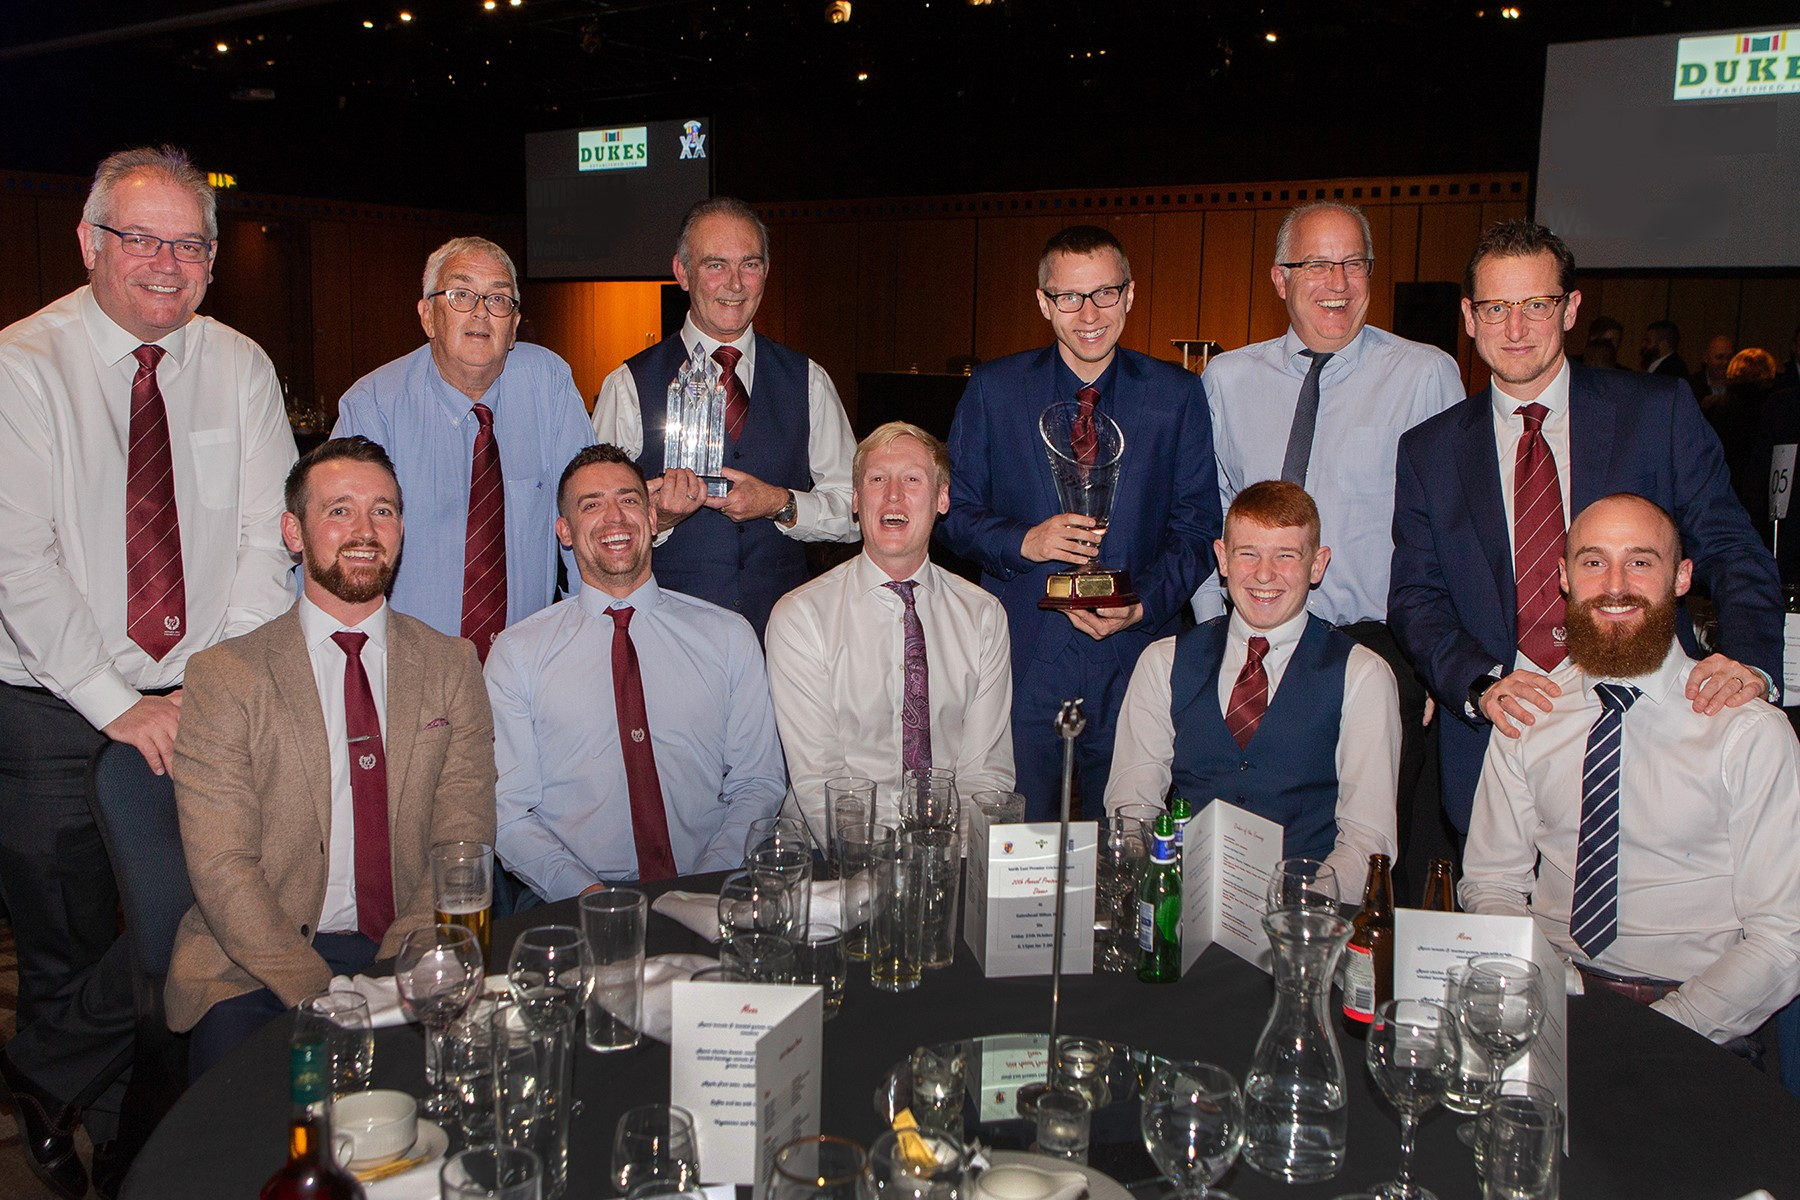 2019 NEPL Annual Dinner - news and pics